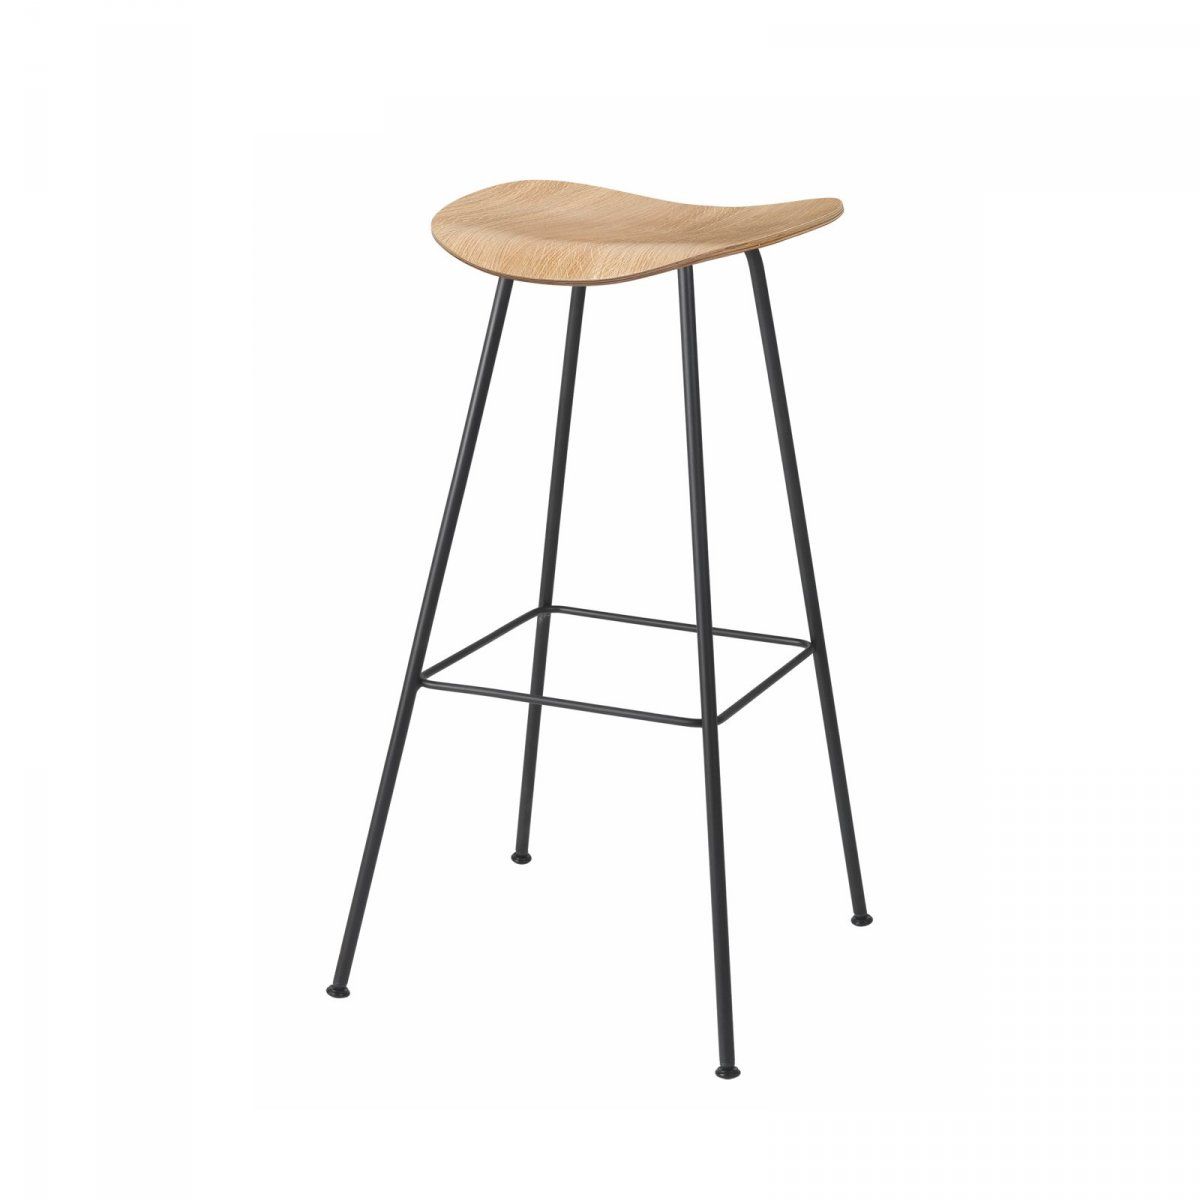 Gubi 2D Stool Center Base, oak.